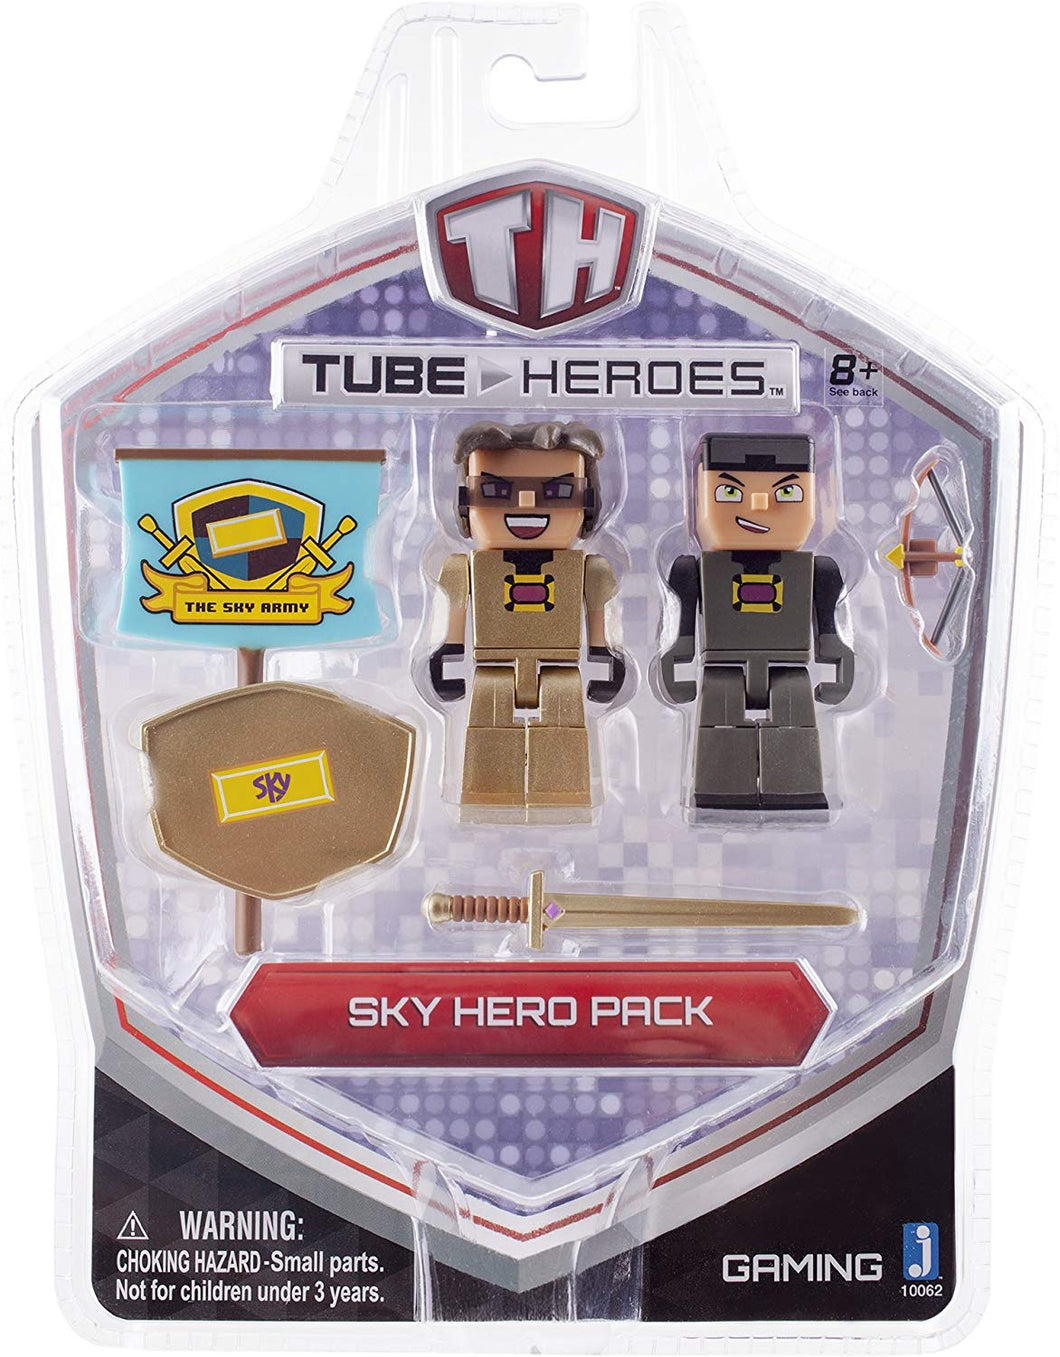 Tube Heroes 2.75 inch Action Figures  Sky Hero Pack